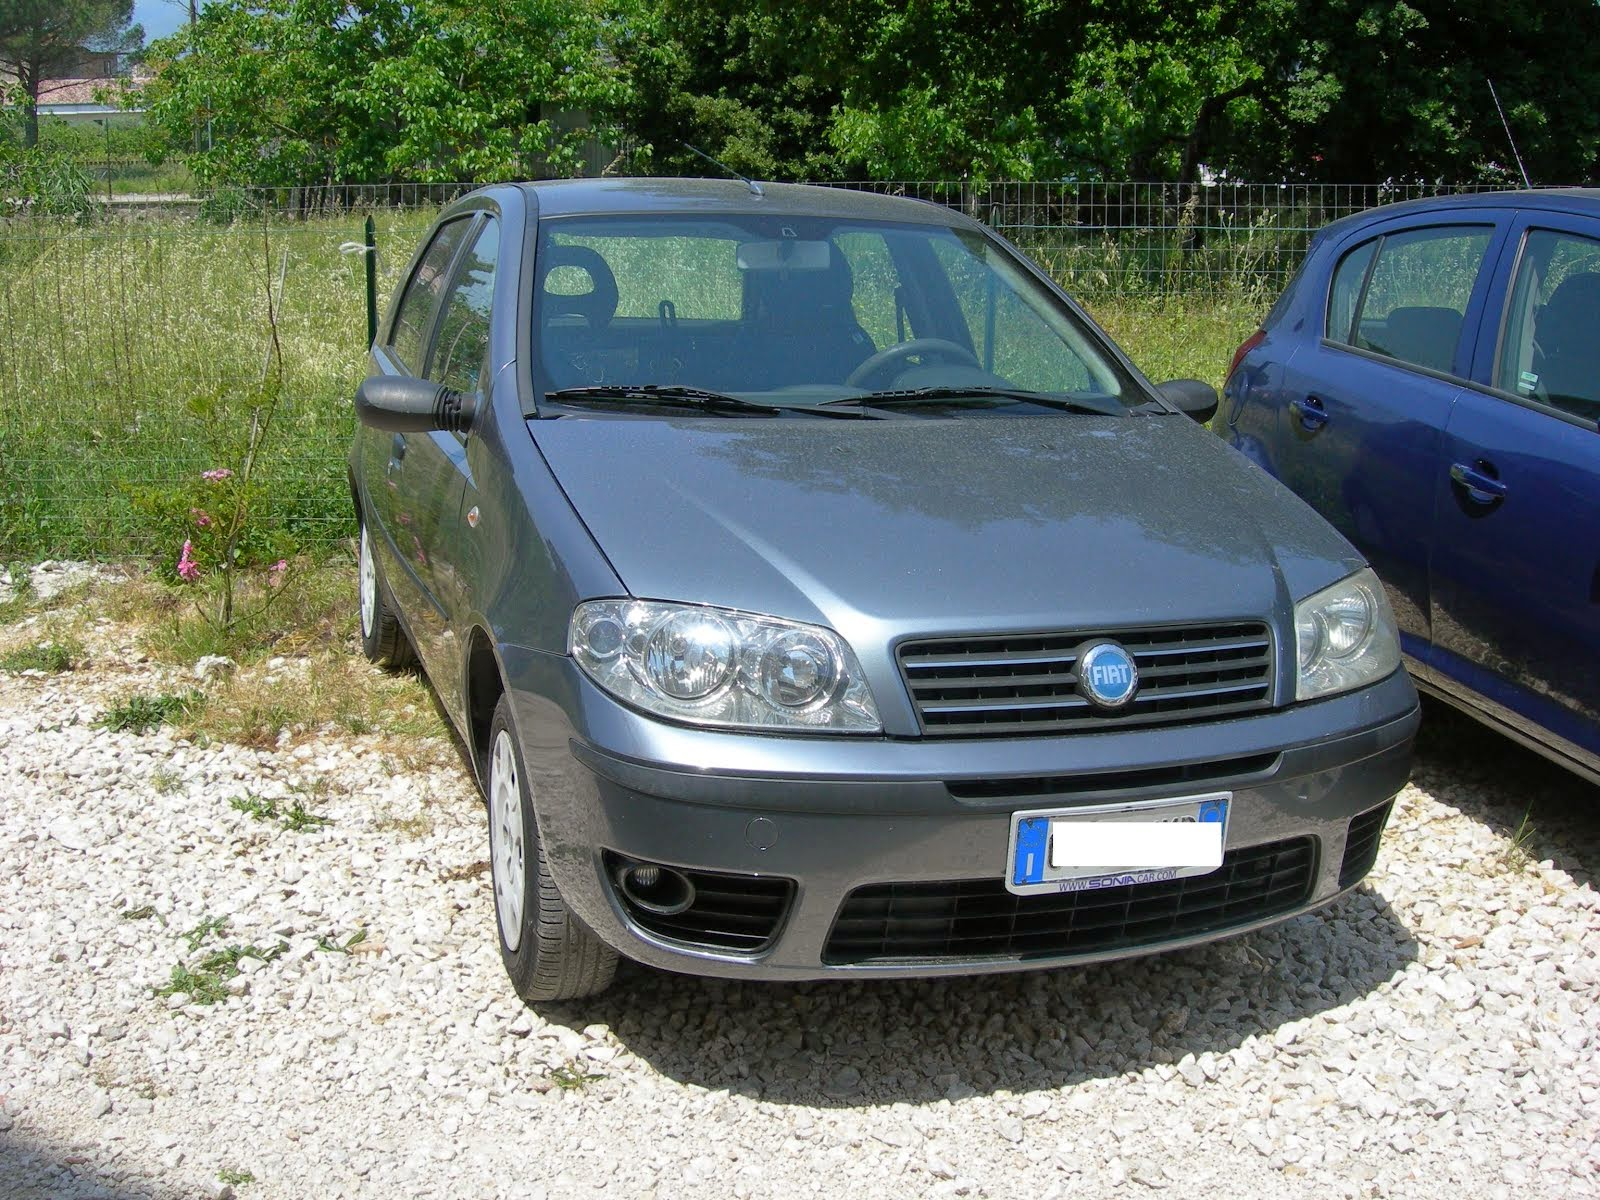 Fiat Punto 1.2 Natural Power Metano Anno 2005